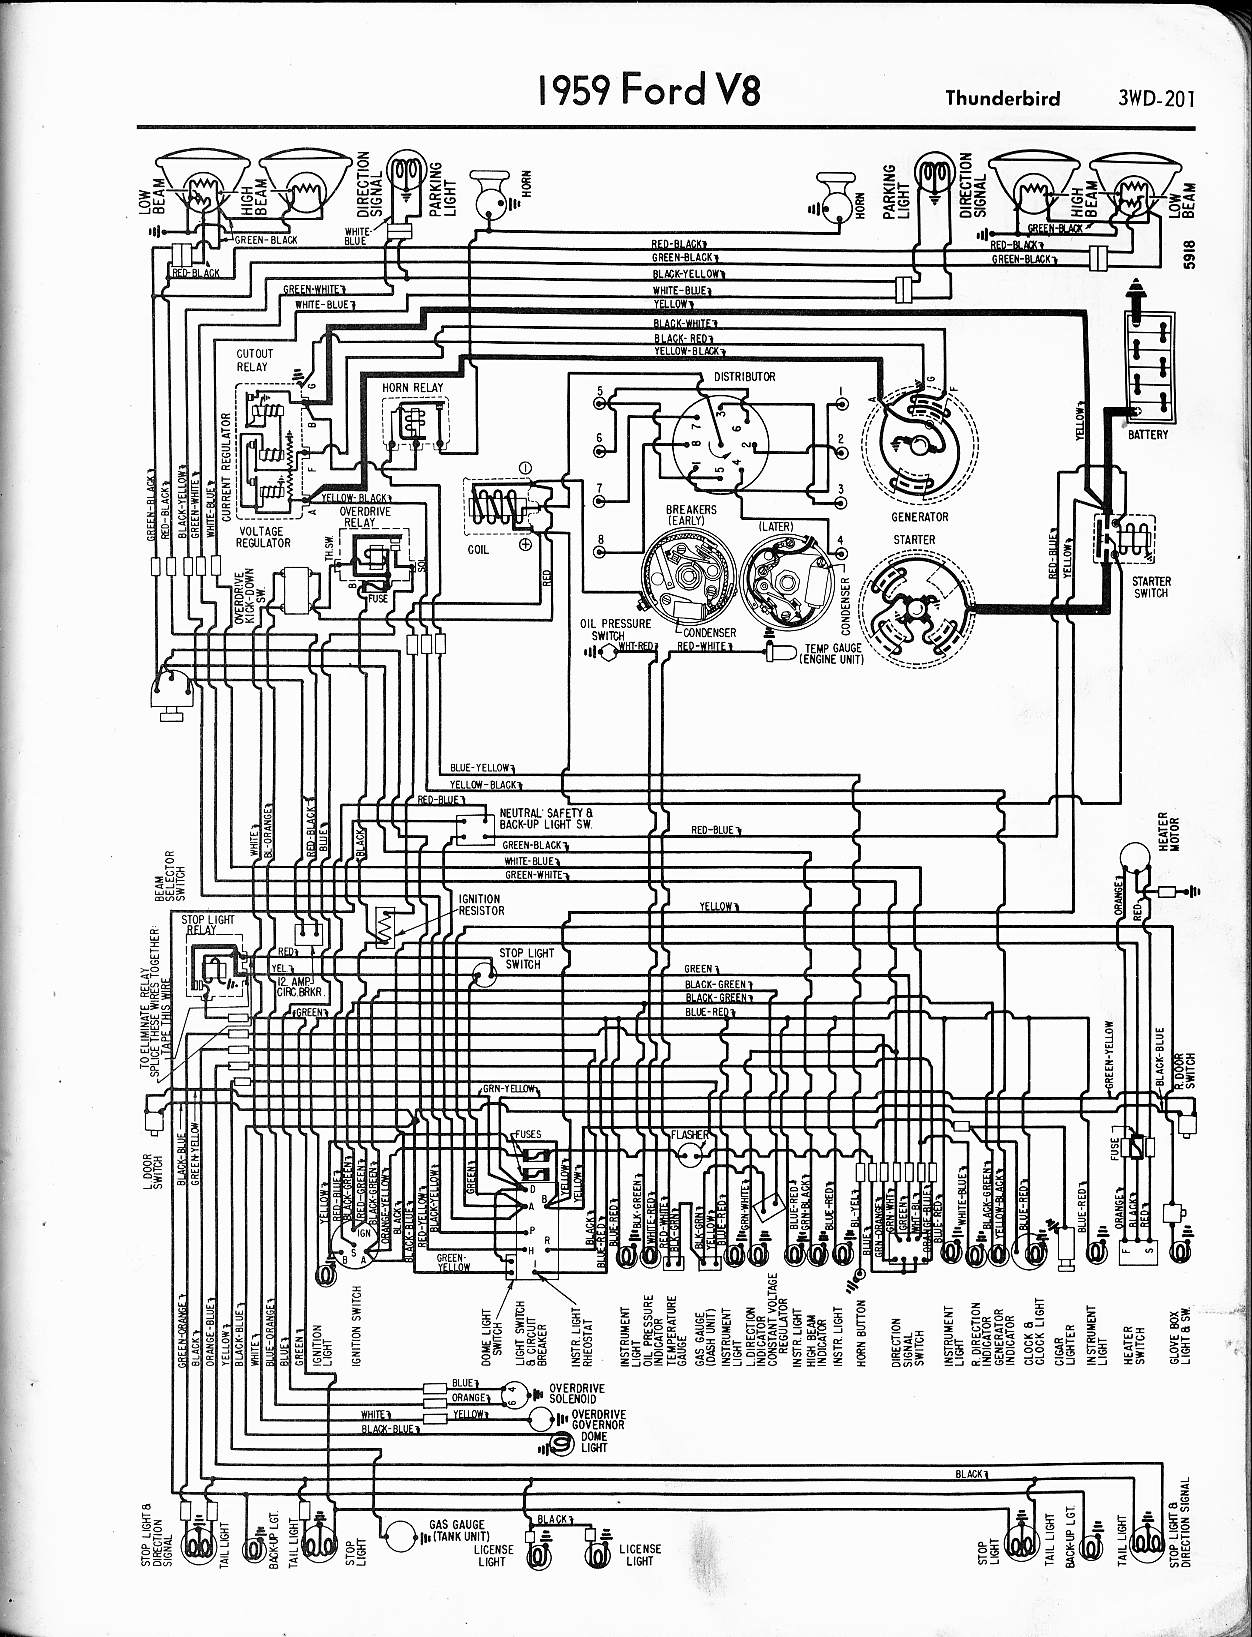 1956 Lincoln Wiring Diagram Generator - Find Wiring Diagram •